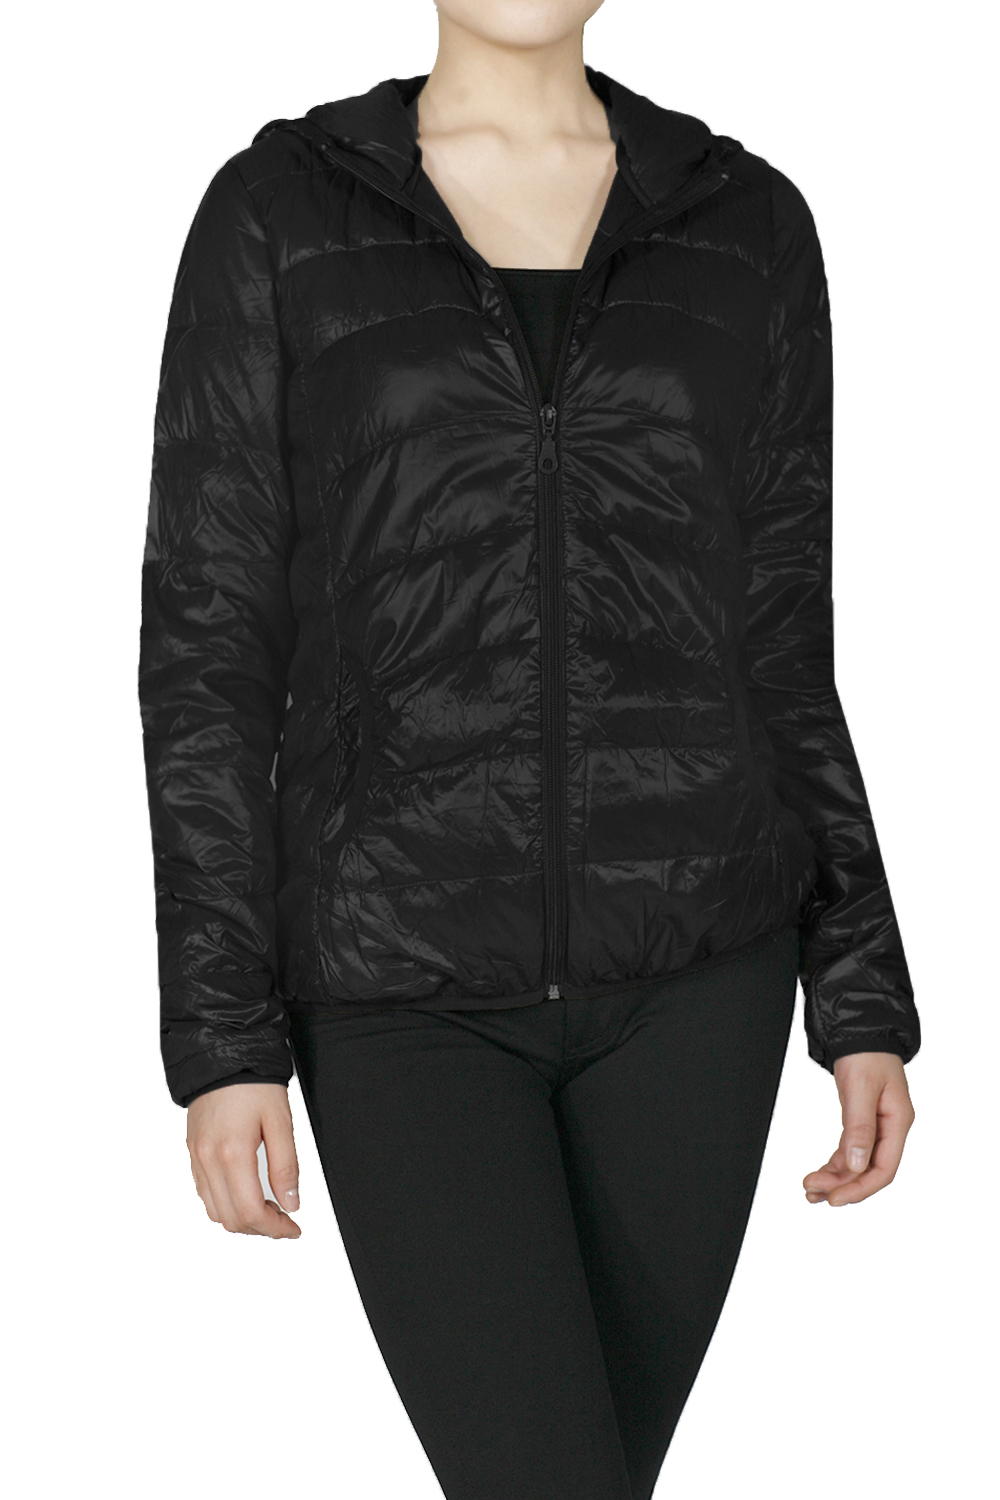 Emmalise Junior Women's Light Weigth Down Parka Jacket with Hoodie and Vest